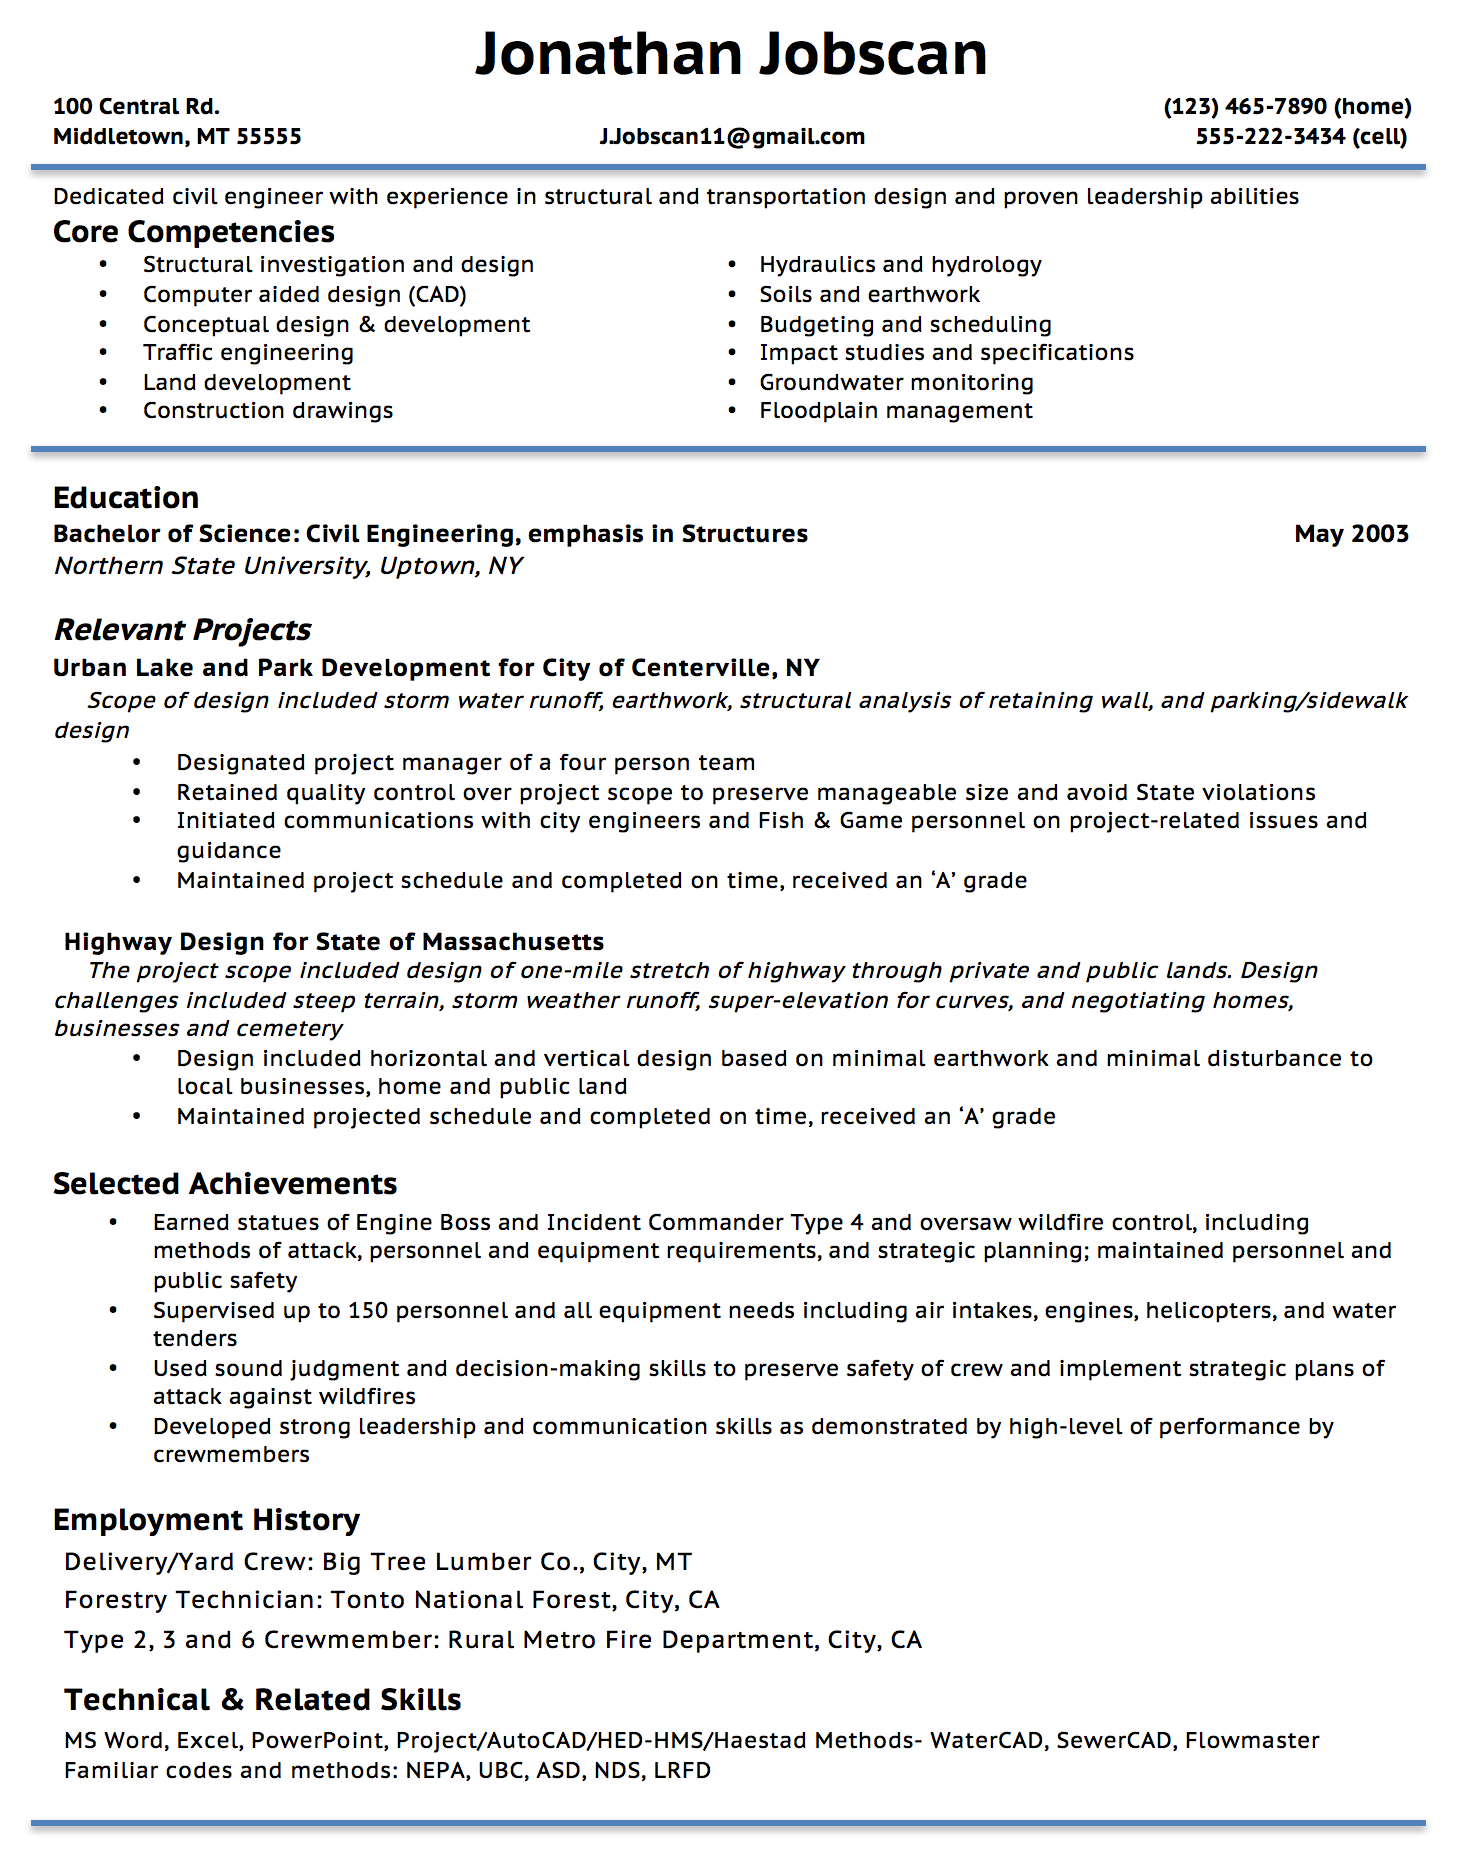 Opposenewapstandardsus  Outstanding Resume Writing Guide  Jobscan With Exciting Example Of A Functional Resume Format With Nice Best Looking Resumes Also Images Of Resumes In Addition What Are Good Skills To Put On A Resume And Librarian Resume As Well As Build Resume For Free Additionally Education Resume Template From Jobscanco With Opposenewapstandardsus  Exciting Resume Writing Guide  Jobscan With Nice Example Of A Functional Resume Format And Outstanding Best Looking Resumes Also Images Of Resumes In Addition What Are Good Skills To Put On A Resume From Jobscanco